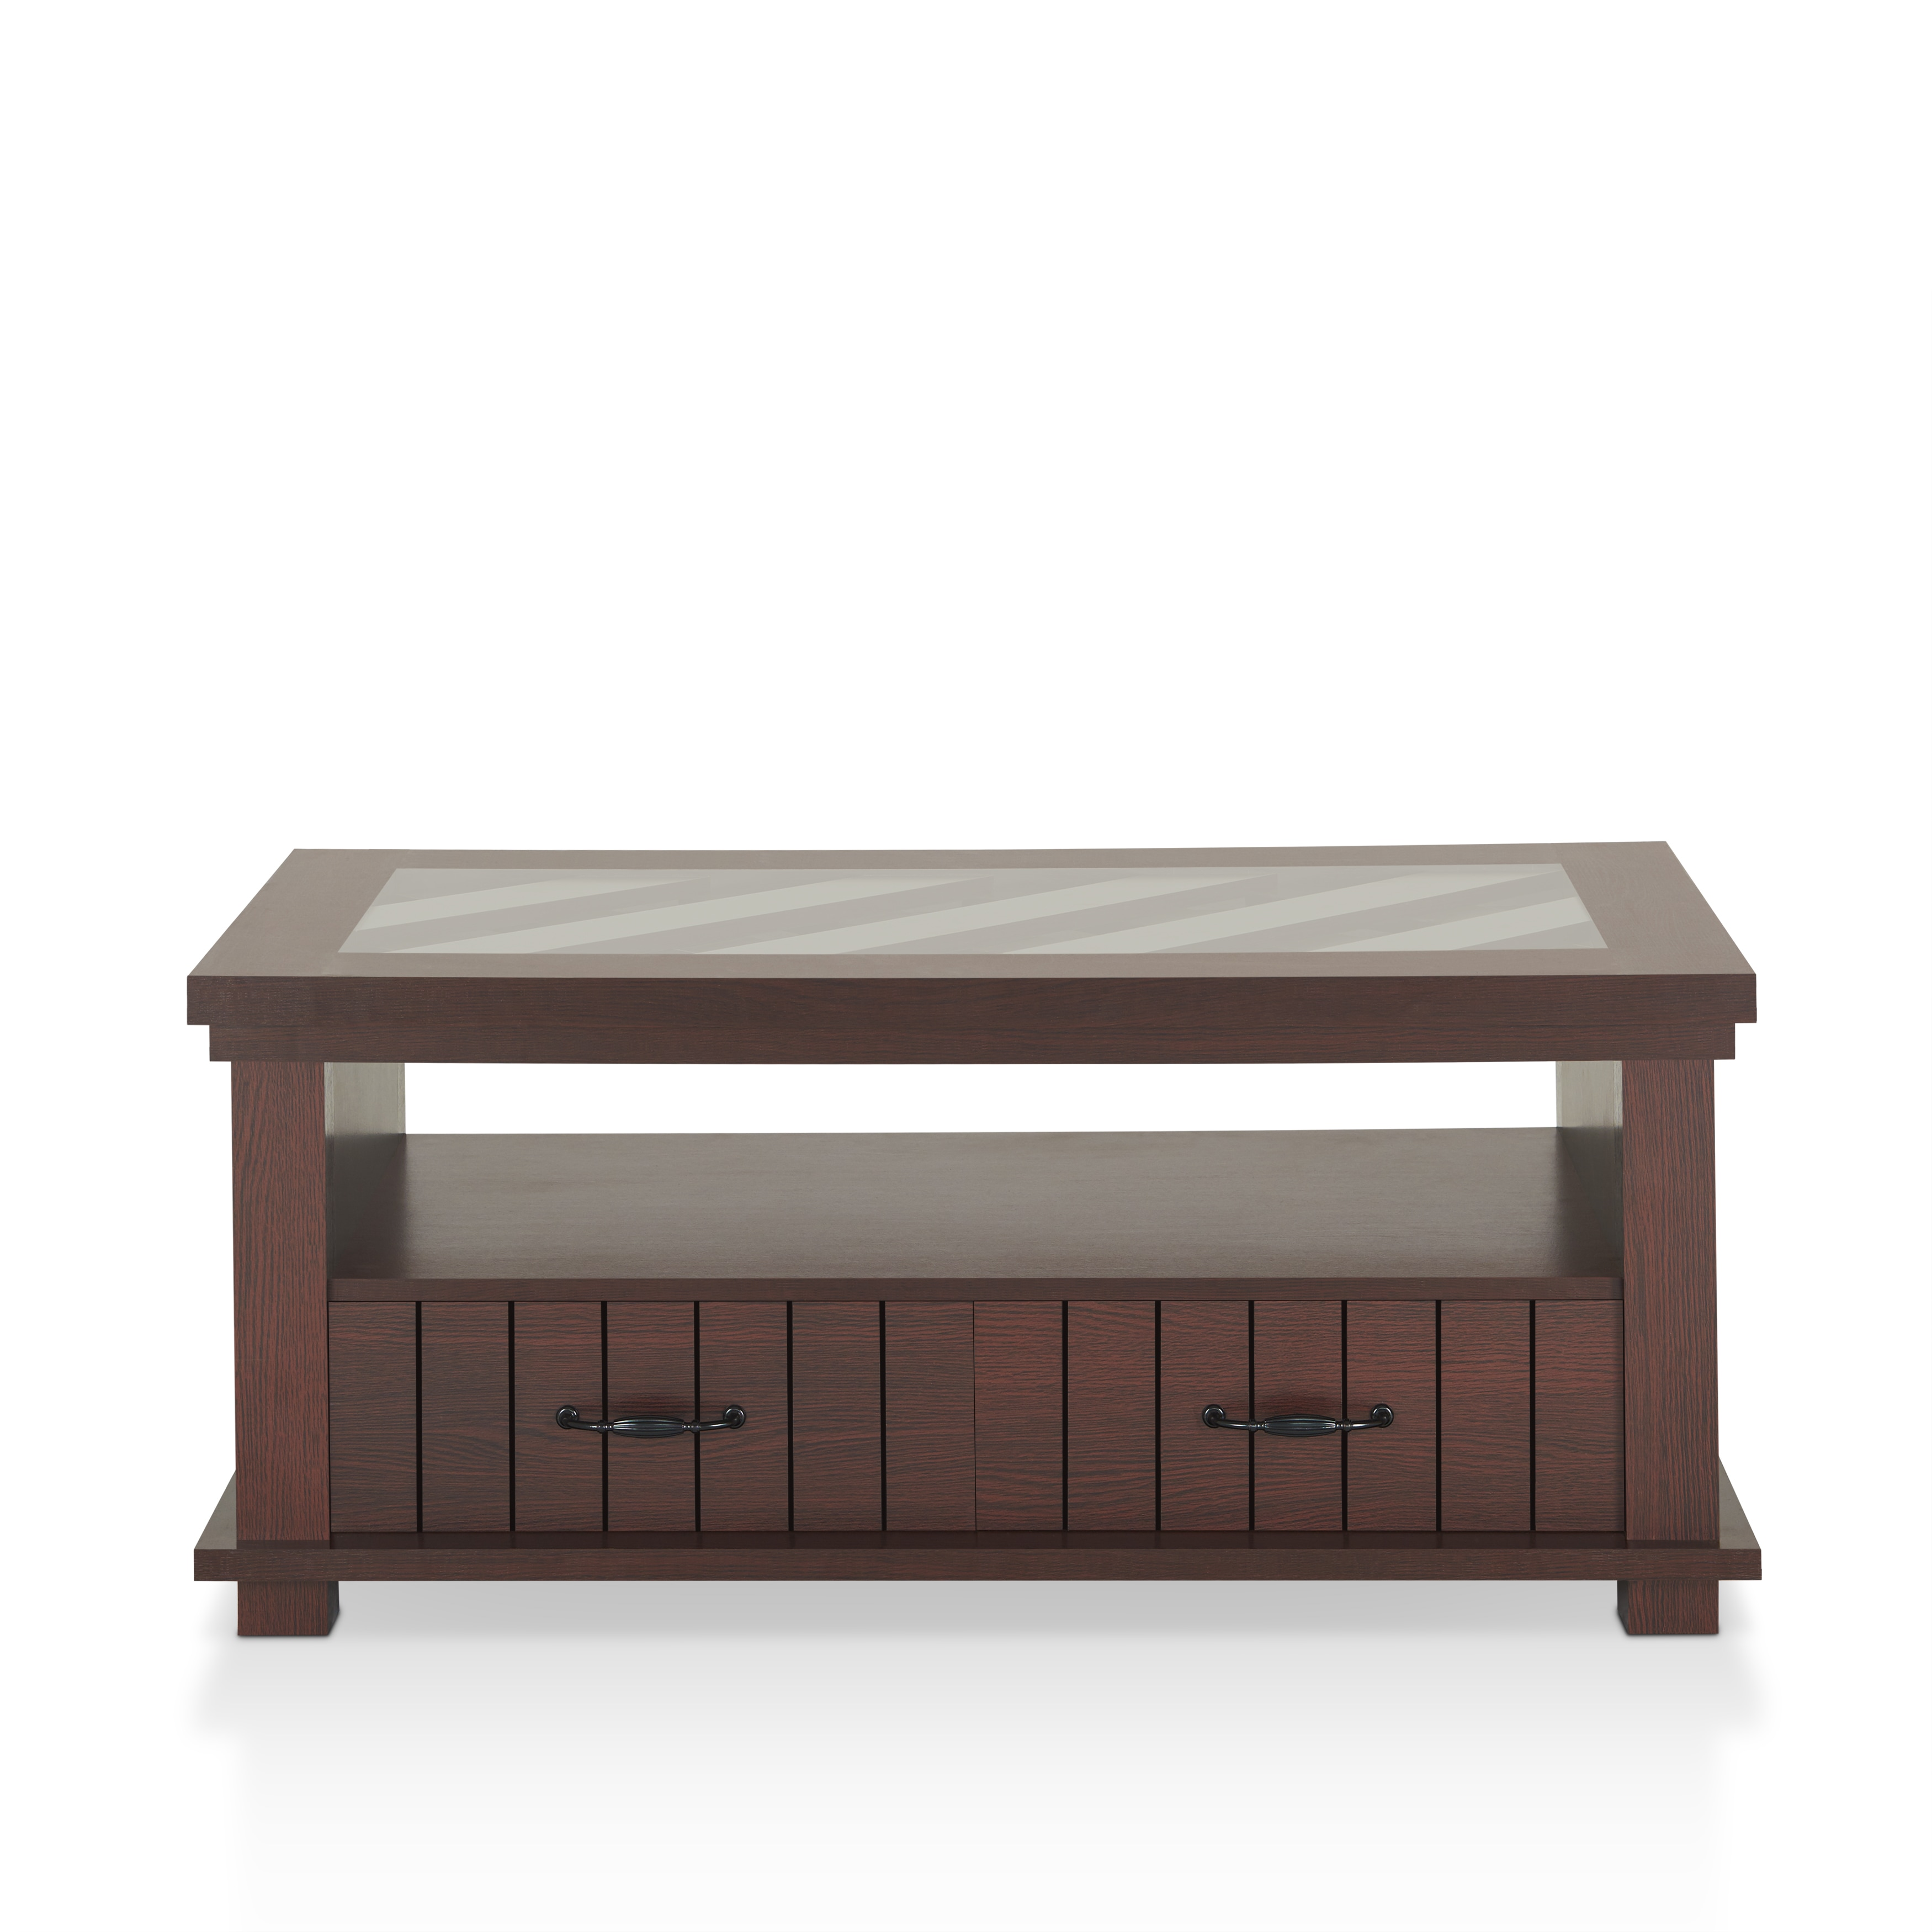 Furniture Of America Cresci Rustic Glass Top 2 Drawer Espresso Coffee Table    Free Shipping Today   Overstock   21174378